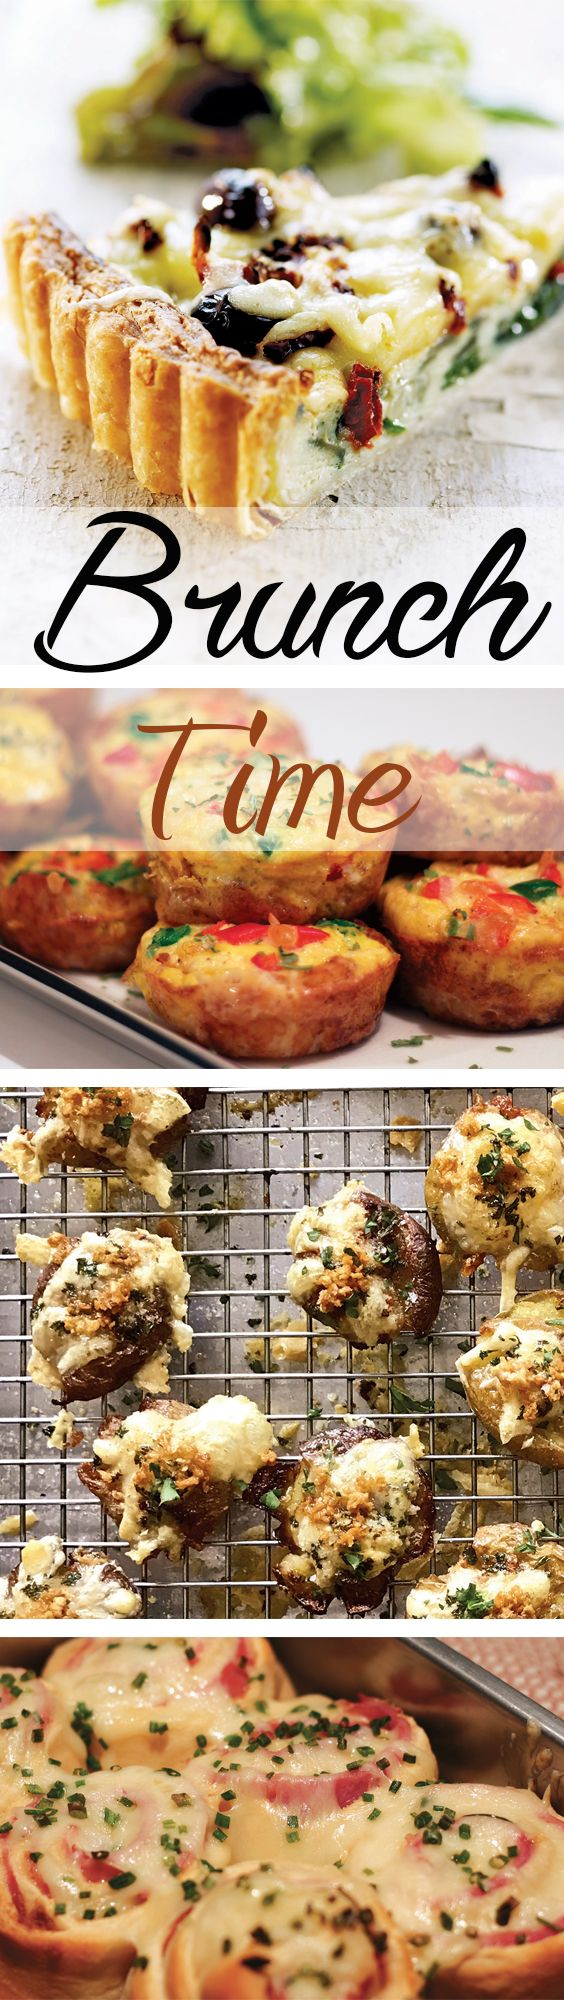 Enjoy a better brunch with Spinach and Sundried Tomato Quiche from Jarlsberg plus Chef George Duran's Brown Sugar Ham and Cheese Sticky Buns, Spicy Tater Tot Breakfast Muffins and Cheesy, Crispy Smashed Potatoes.